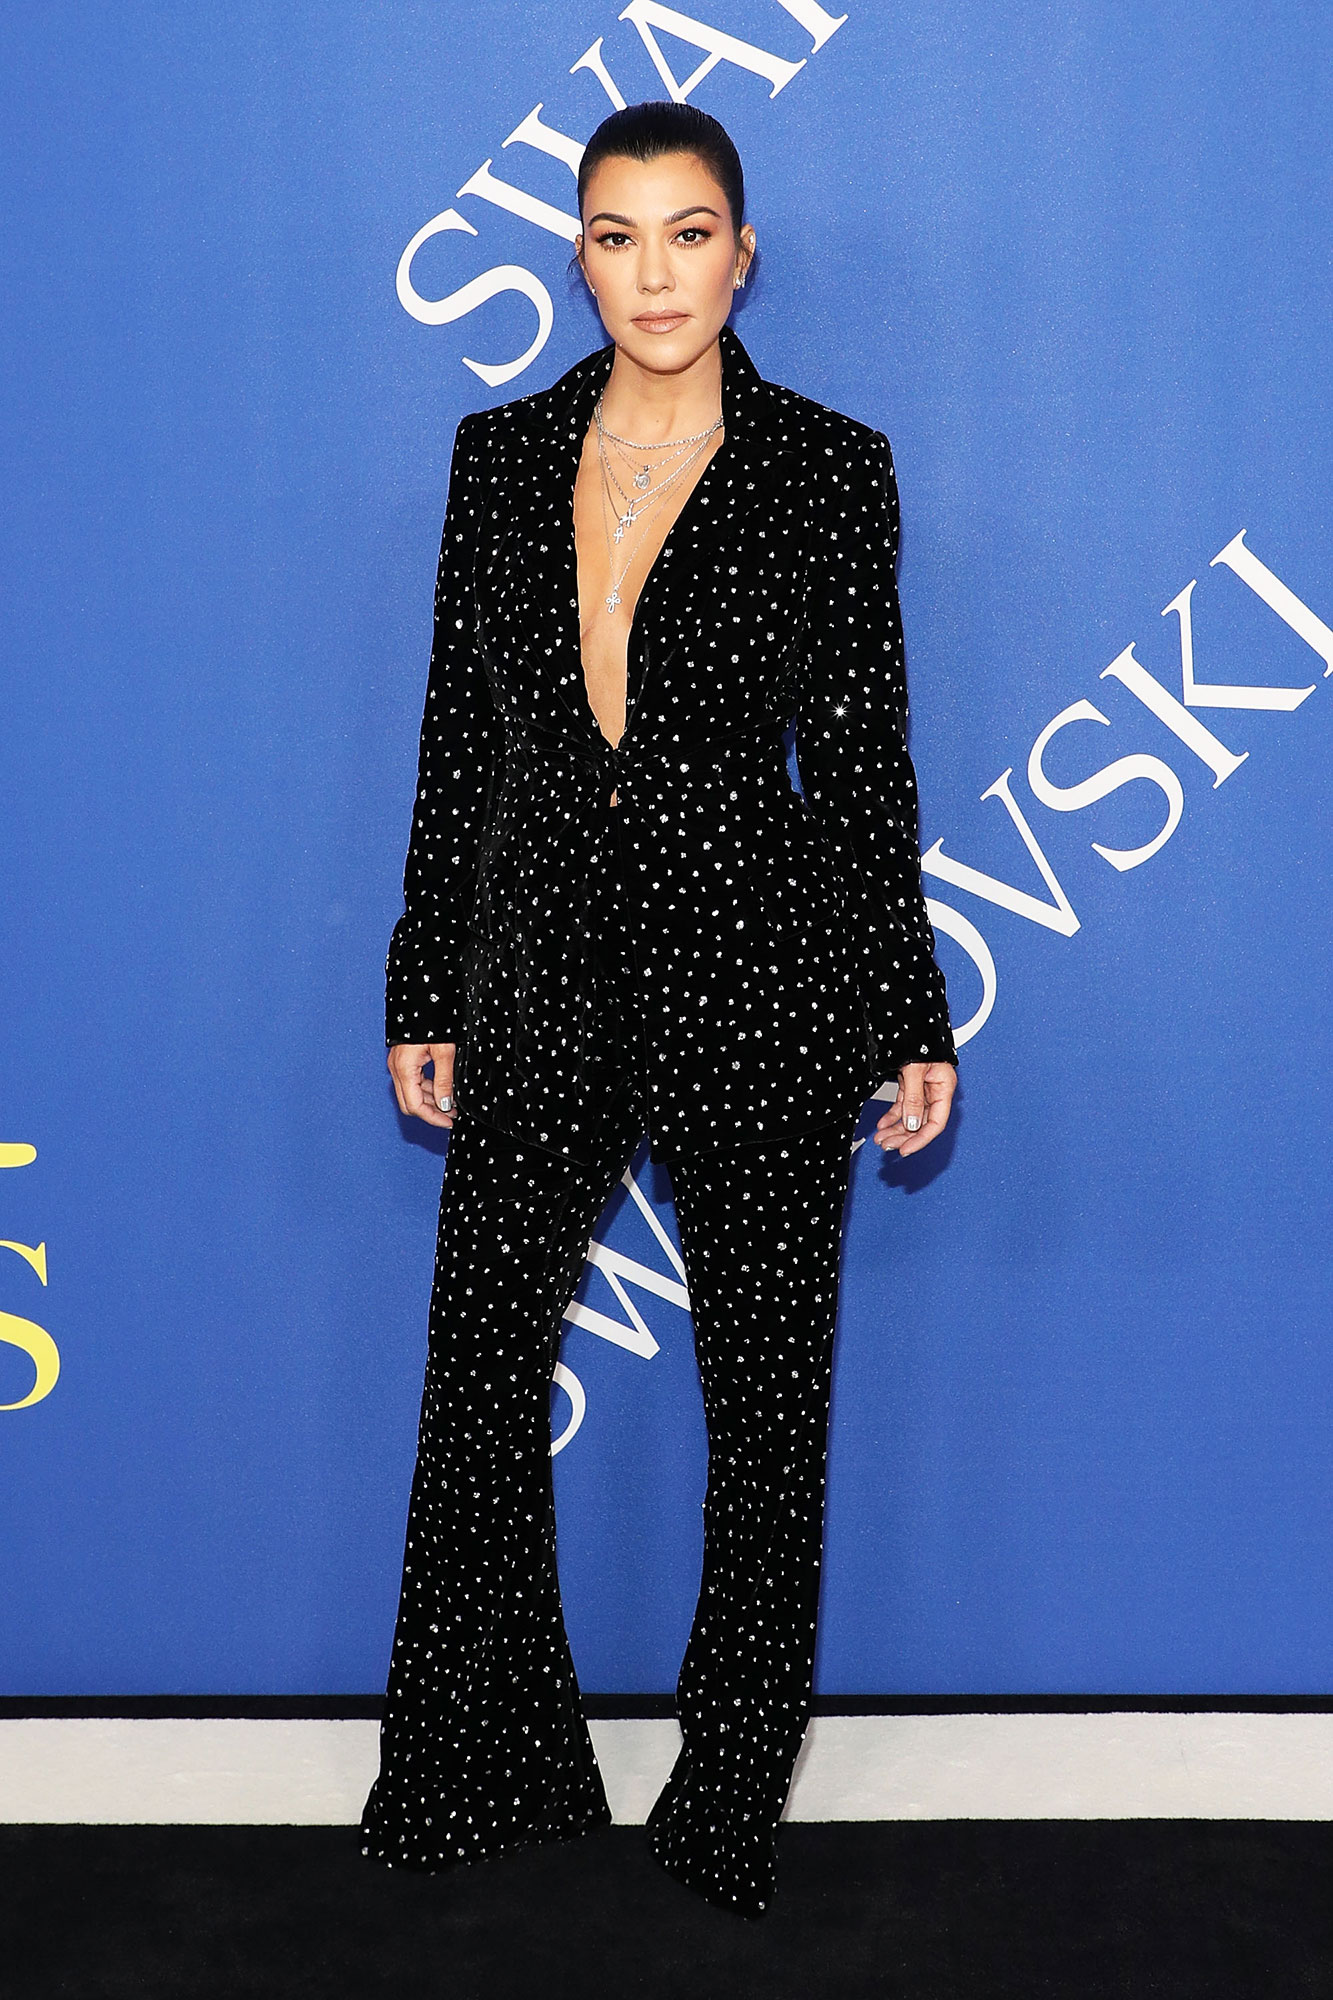 Happy 40th Birthday, Kourtney Kardashian - It was all about the #BossLady vibes in a sparkly Christian Siriano suit at the 2018 CFDA Awards.